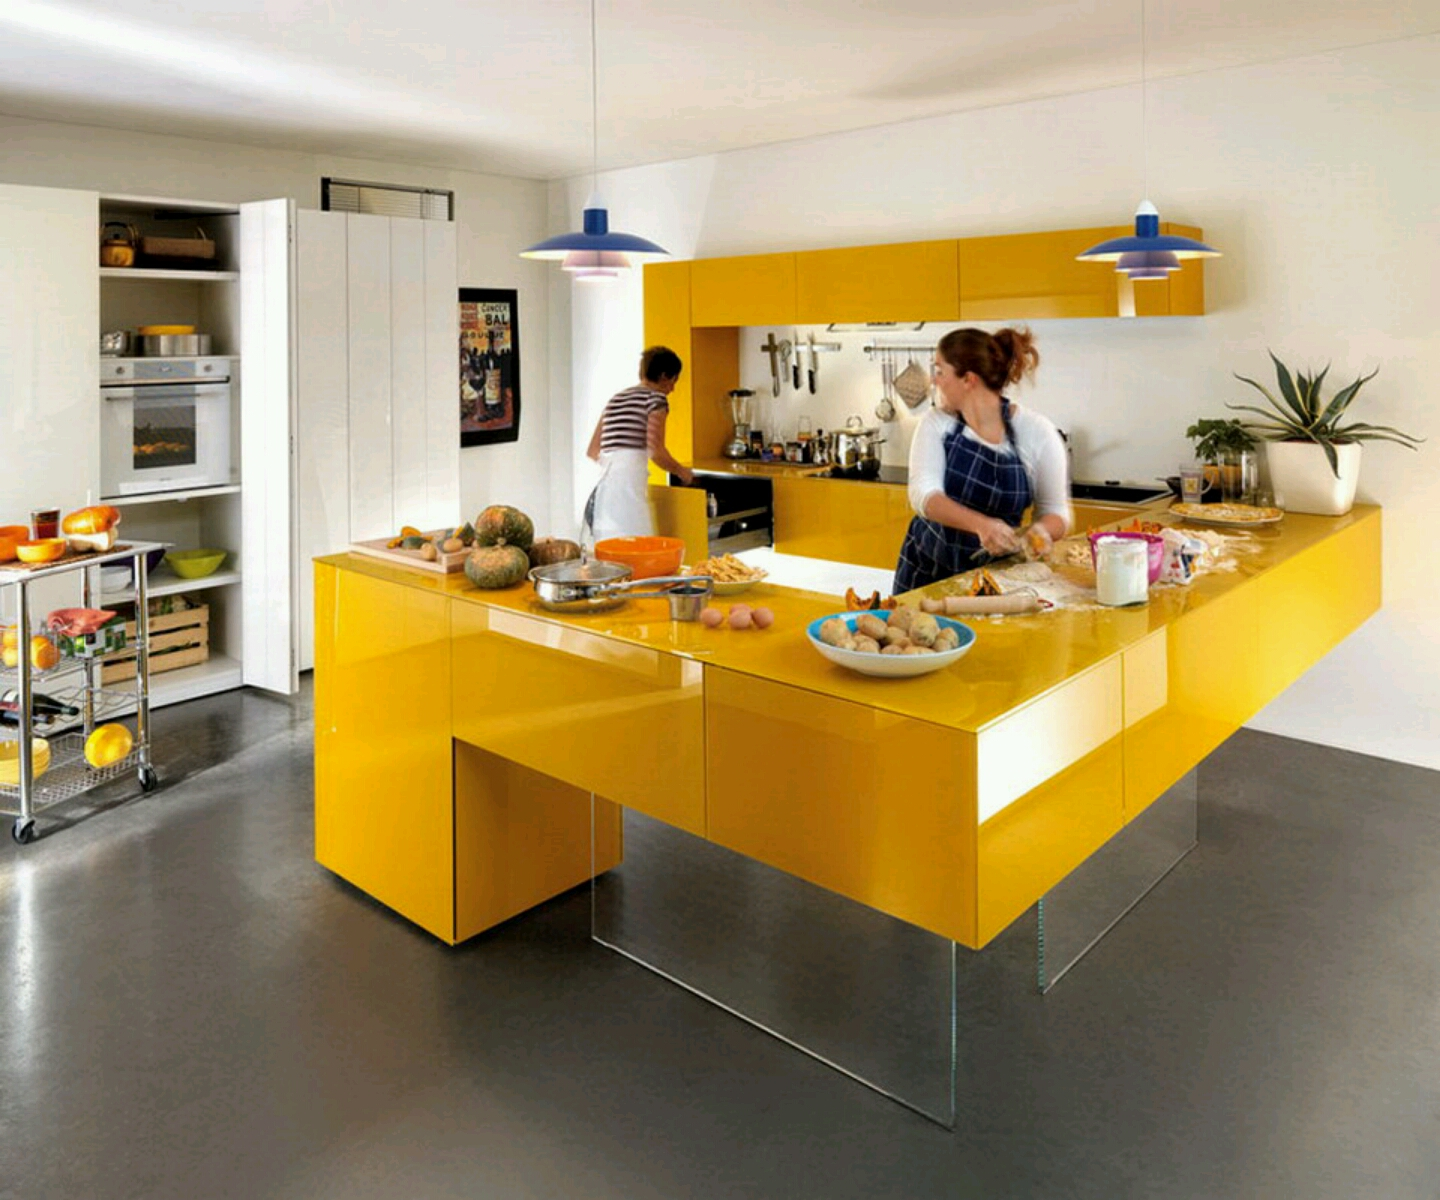 Modern kitchen cabinets designs ideas furniture gallery for Latest kitchen units designs